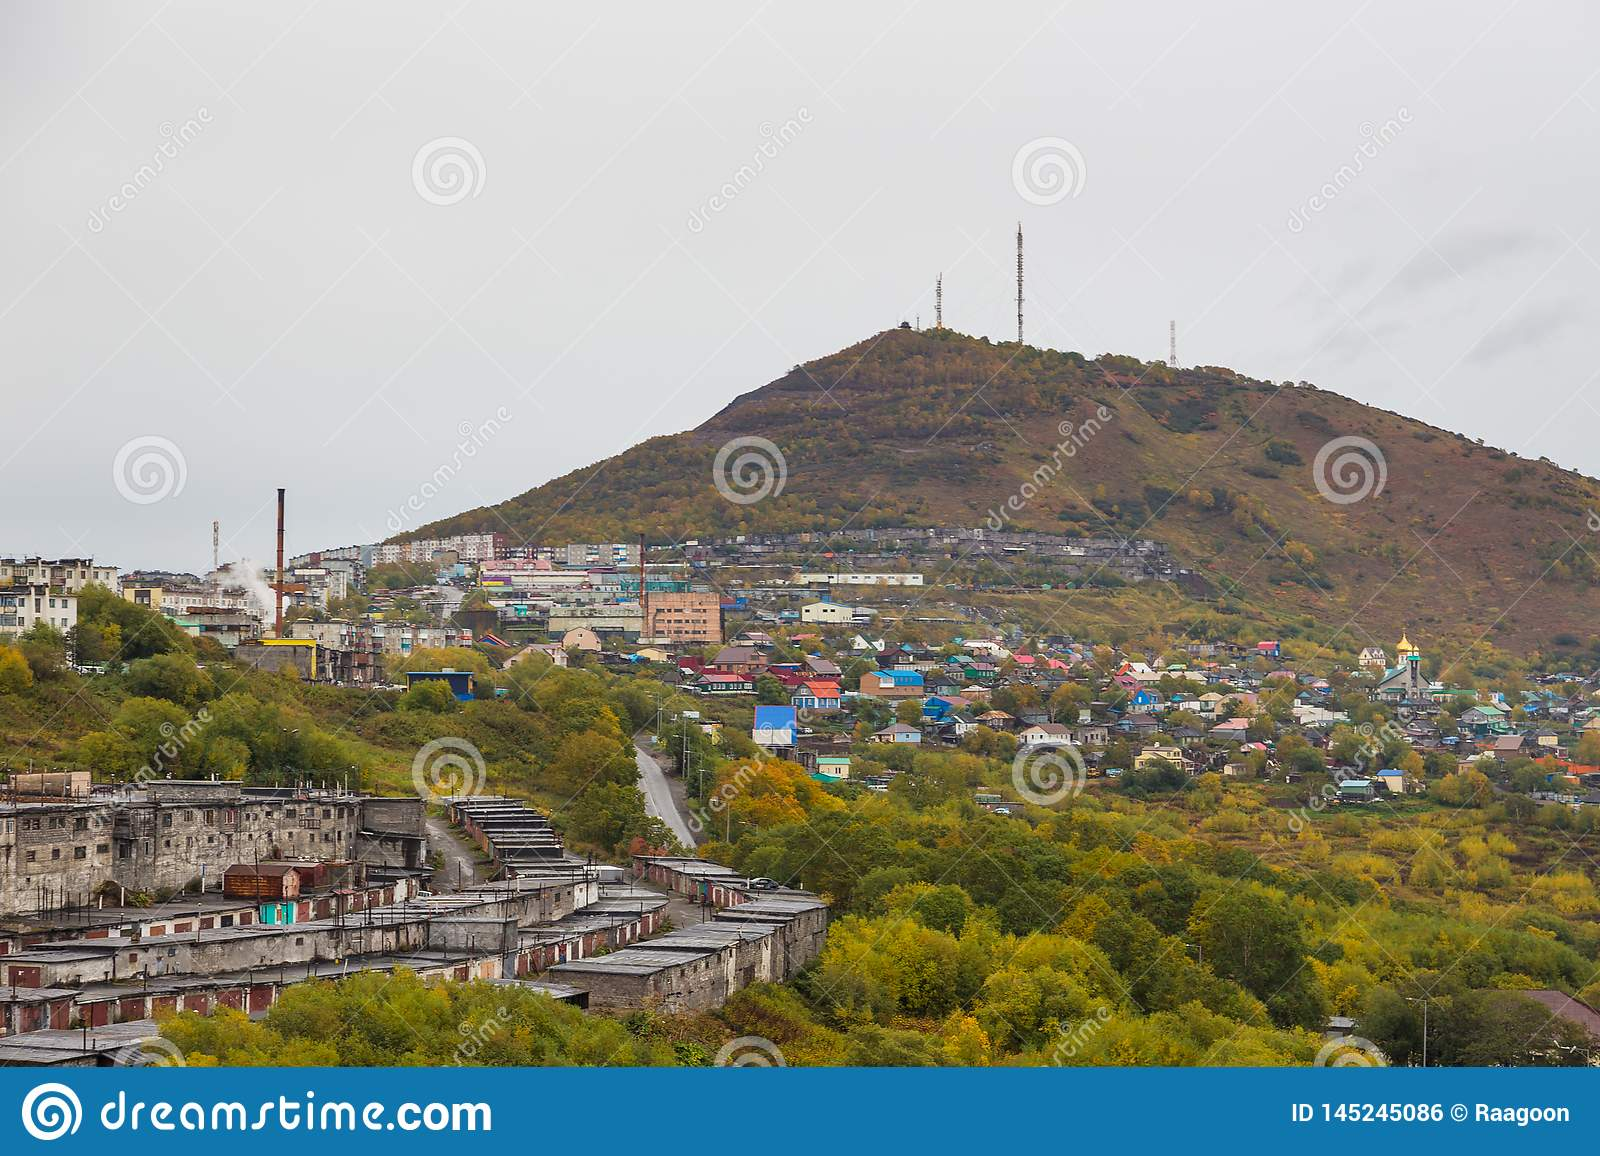 View Of The Mishennaya Mountain, Petropavlovsk-Kamchatsky, Russia